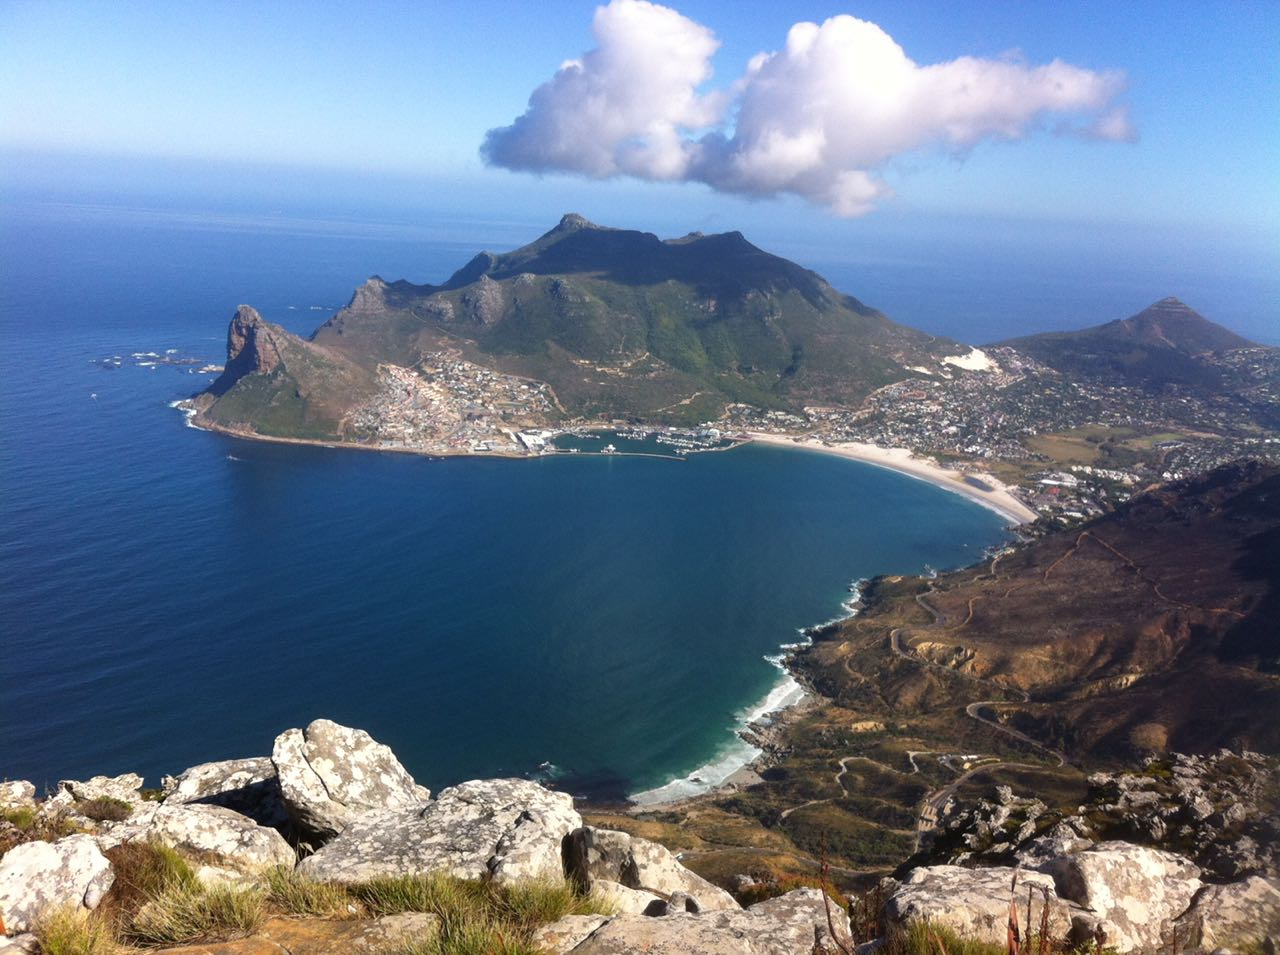 Silvermine, looking towards Hout Bay